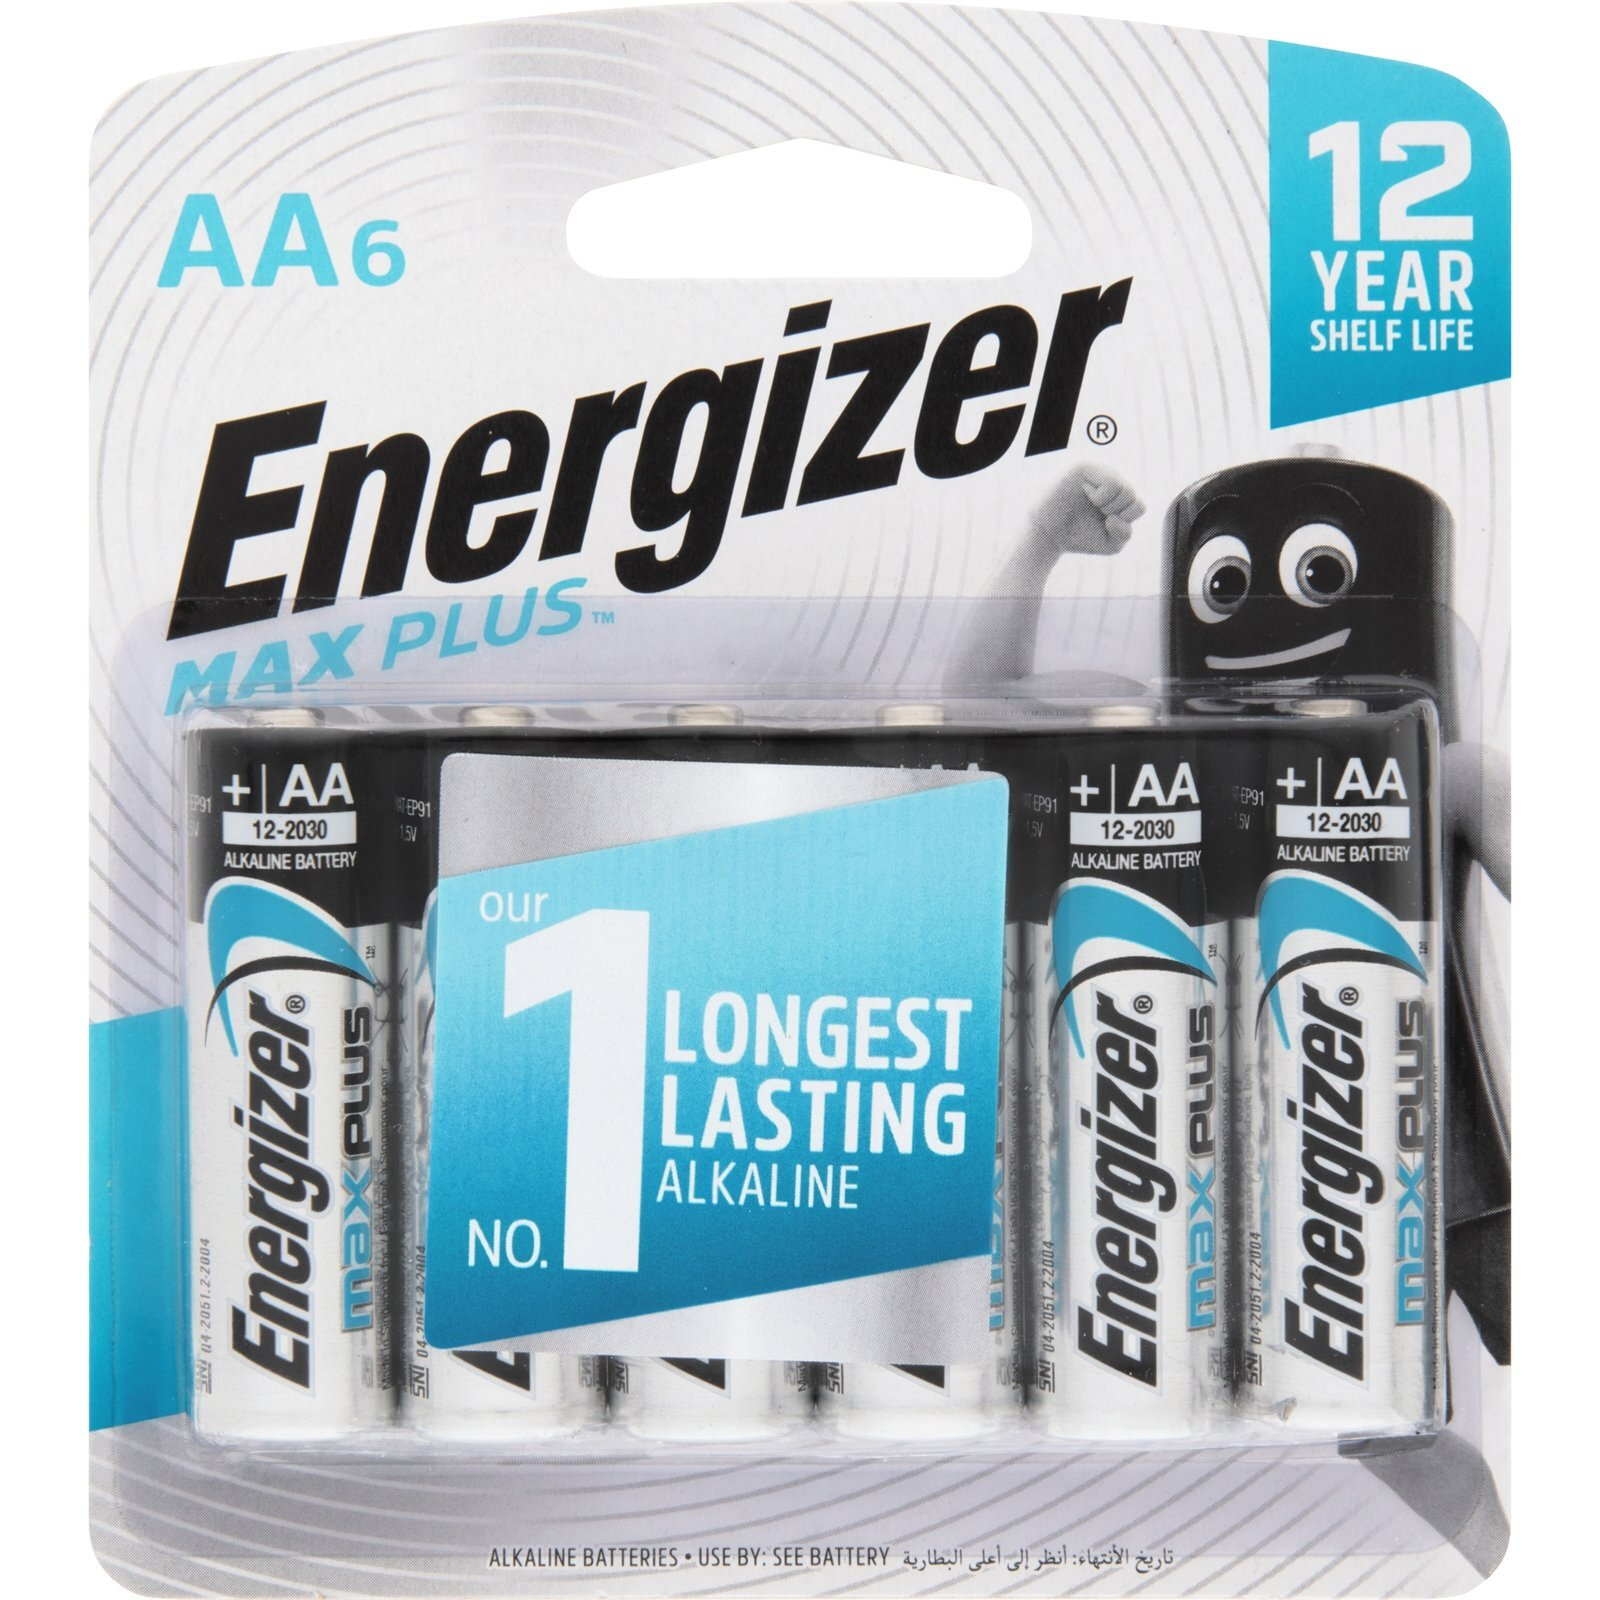 Energizer Max Plus AA Battery - 6 Pack